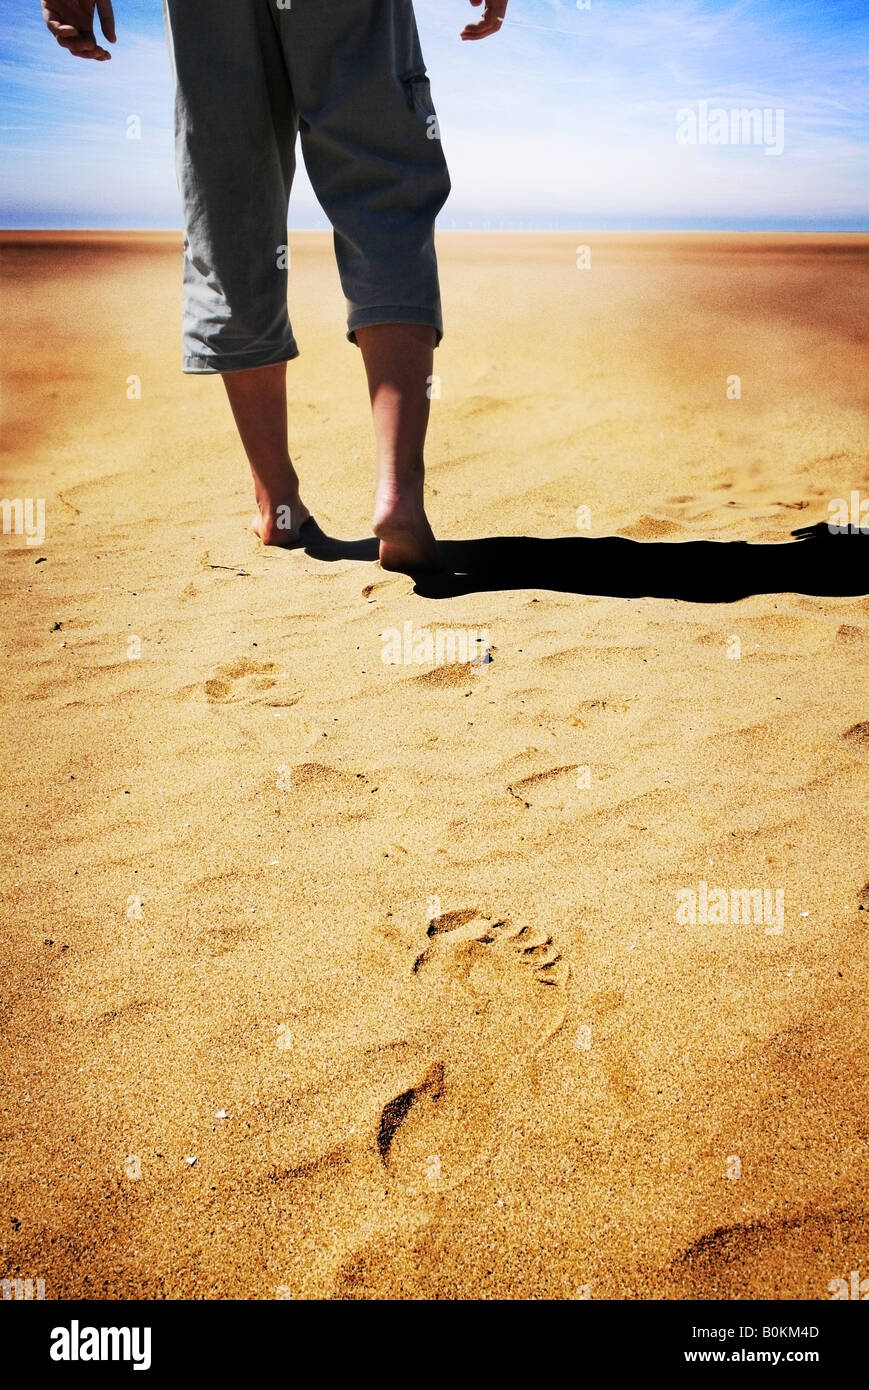 man walking bare foot alone on sand with clear footprint left in soft sand - Stock Image